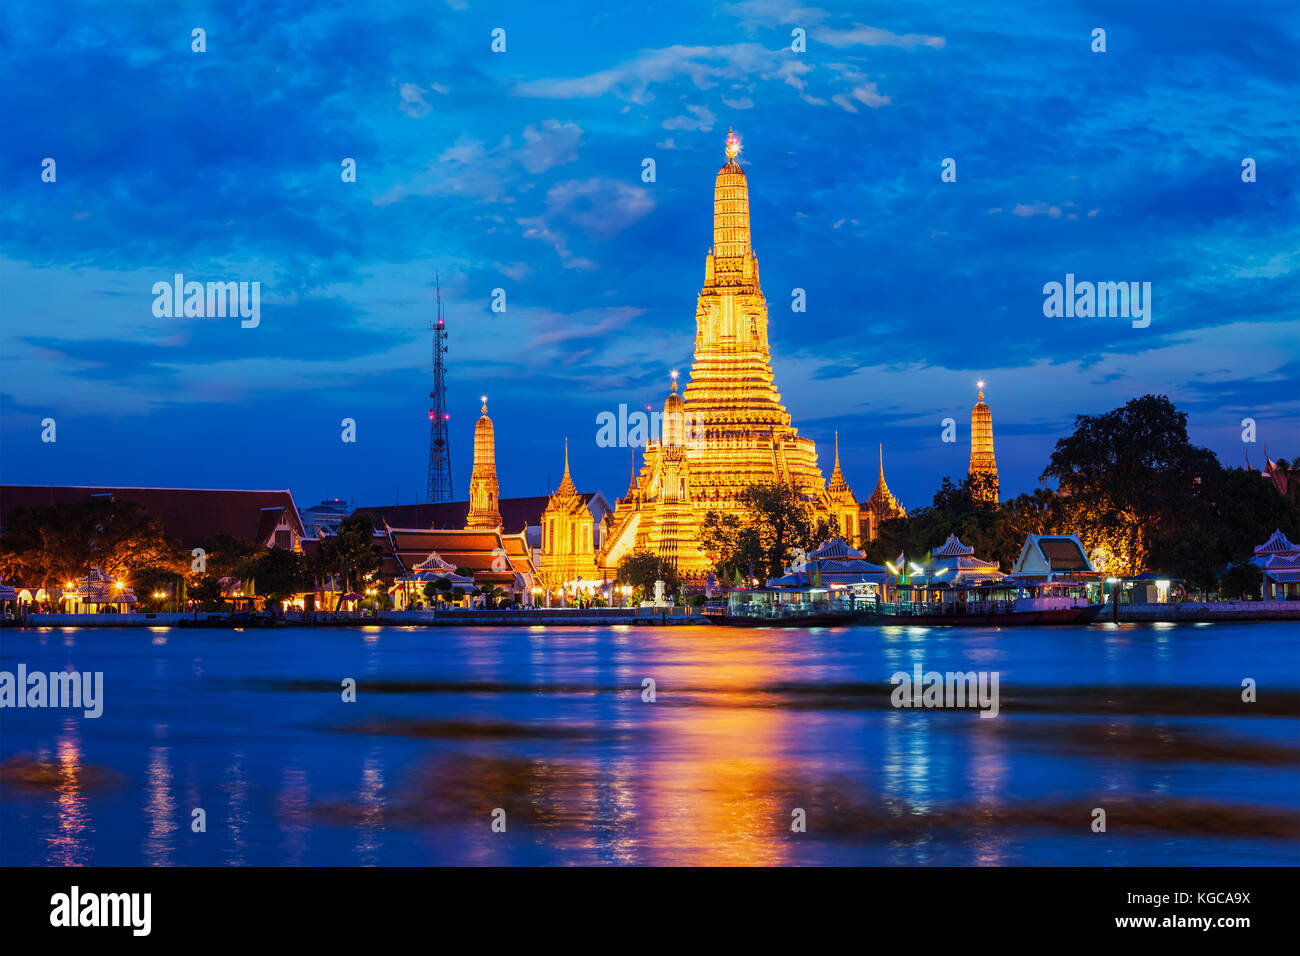 Wat Arun temple in Bangkok, Thailand in the night - Stock Image